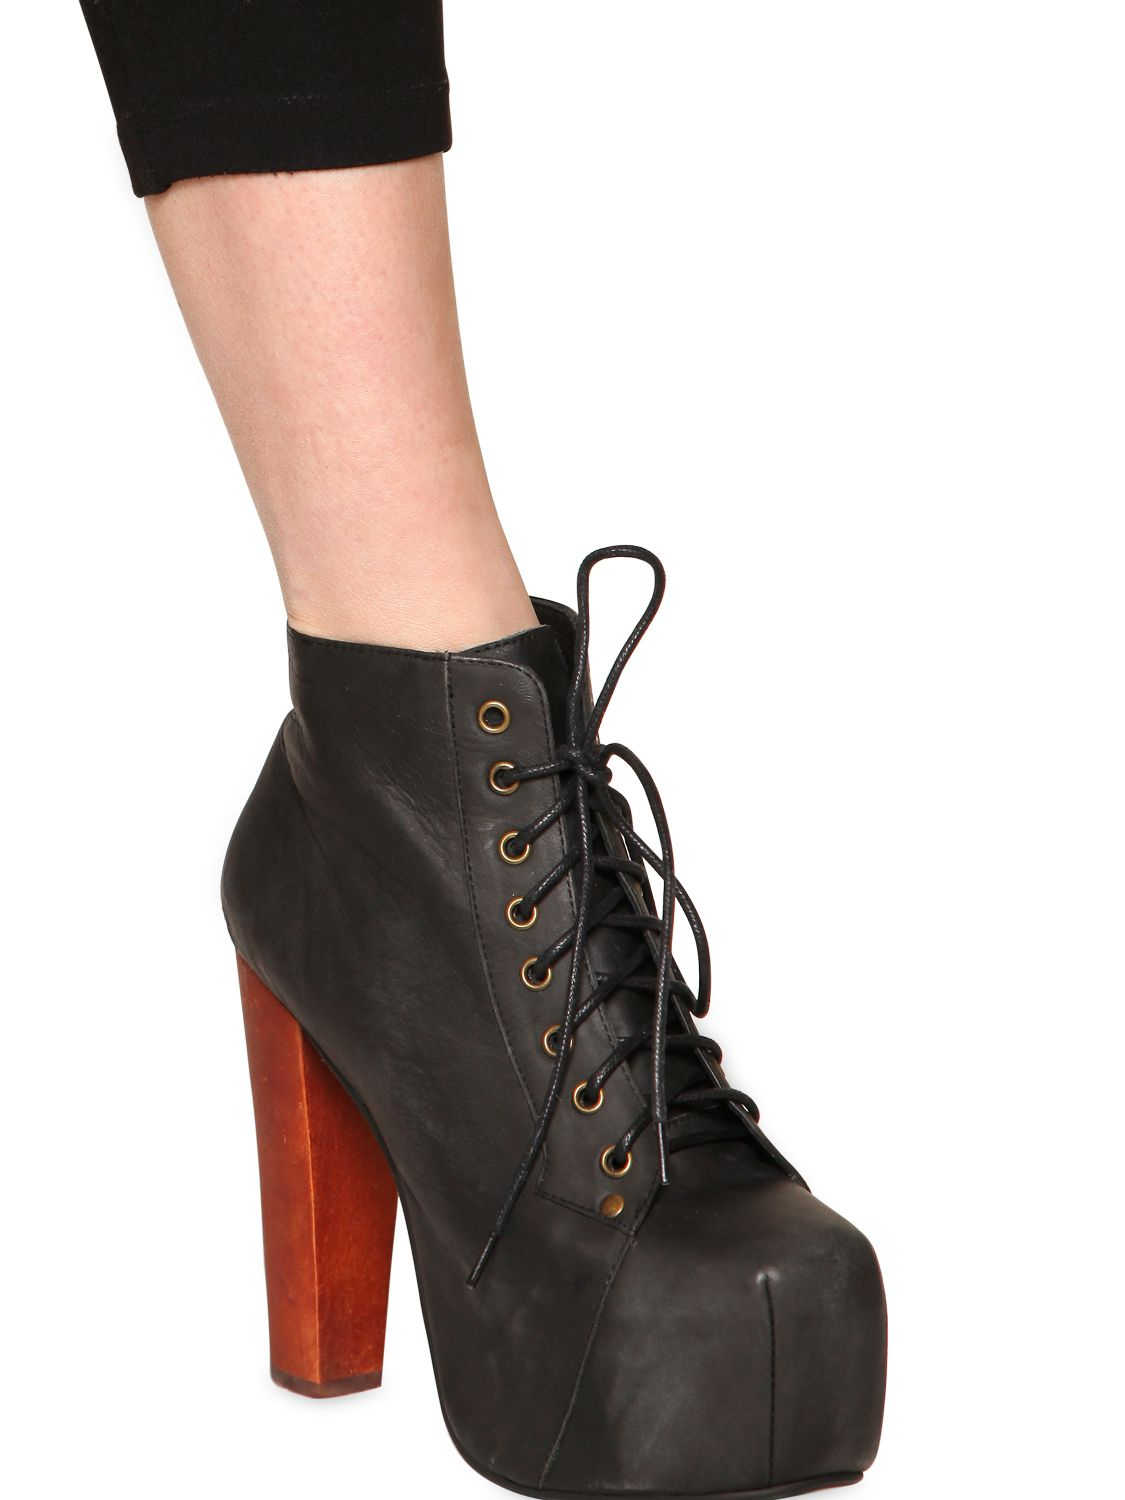 Jeffrey campbell 120mm lita leather ankle boots in black lyst - Jeffrey campbell lita platform boots ...